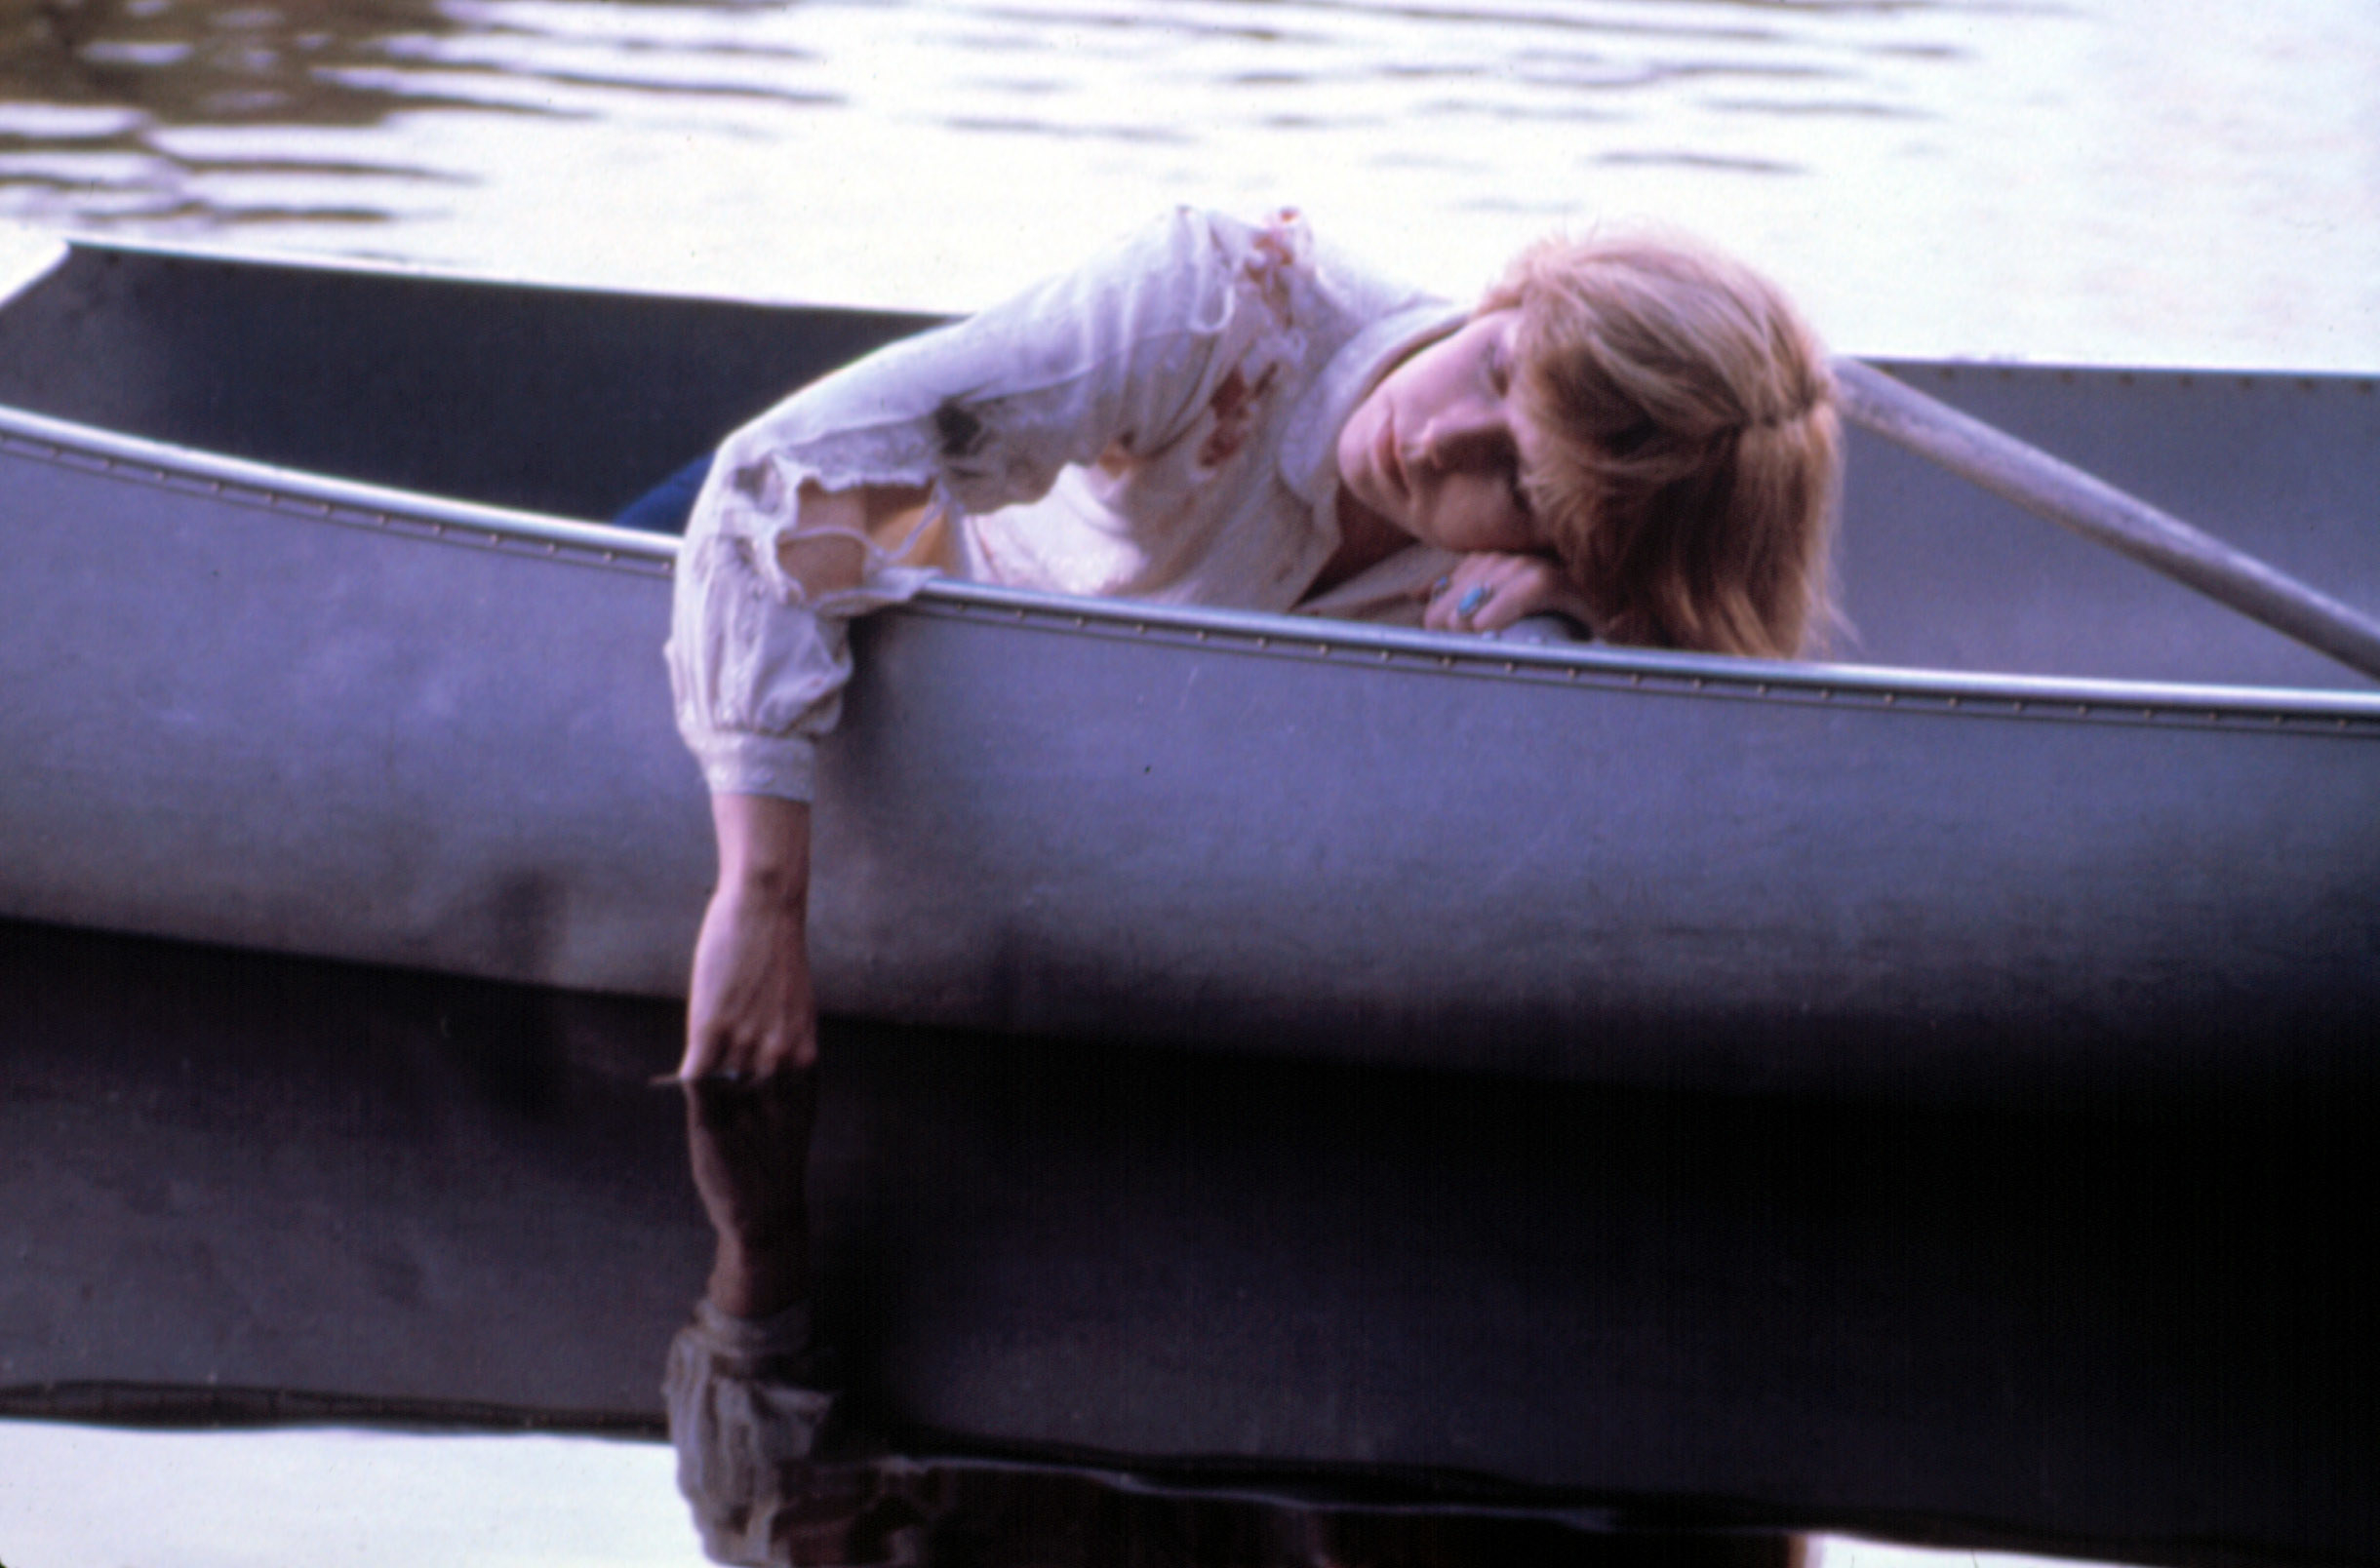 A woman sleeps in a boat with her hand dipped into the lake